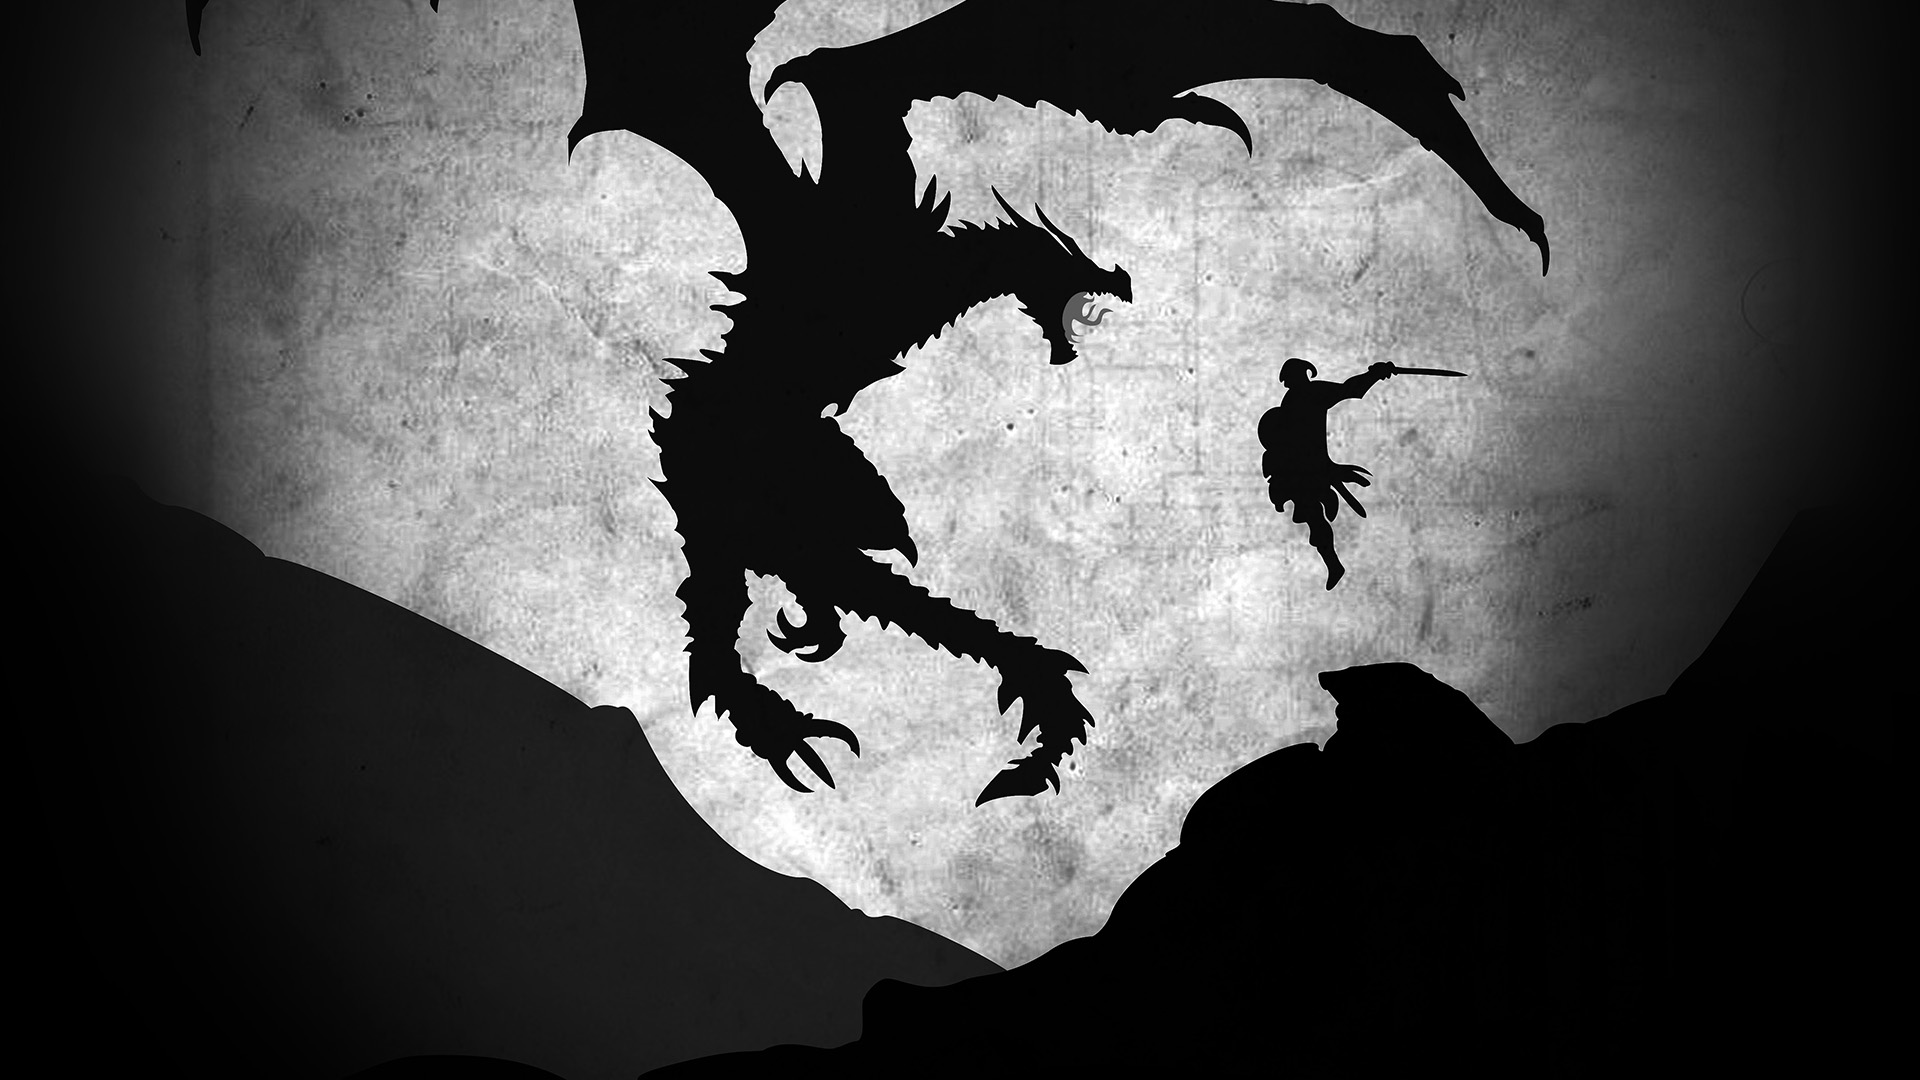 au58-skyrim-dragon-illustration-art-bw-wallpaper